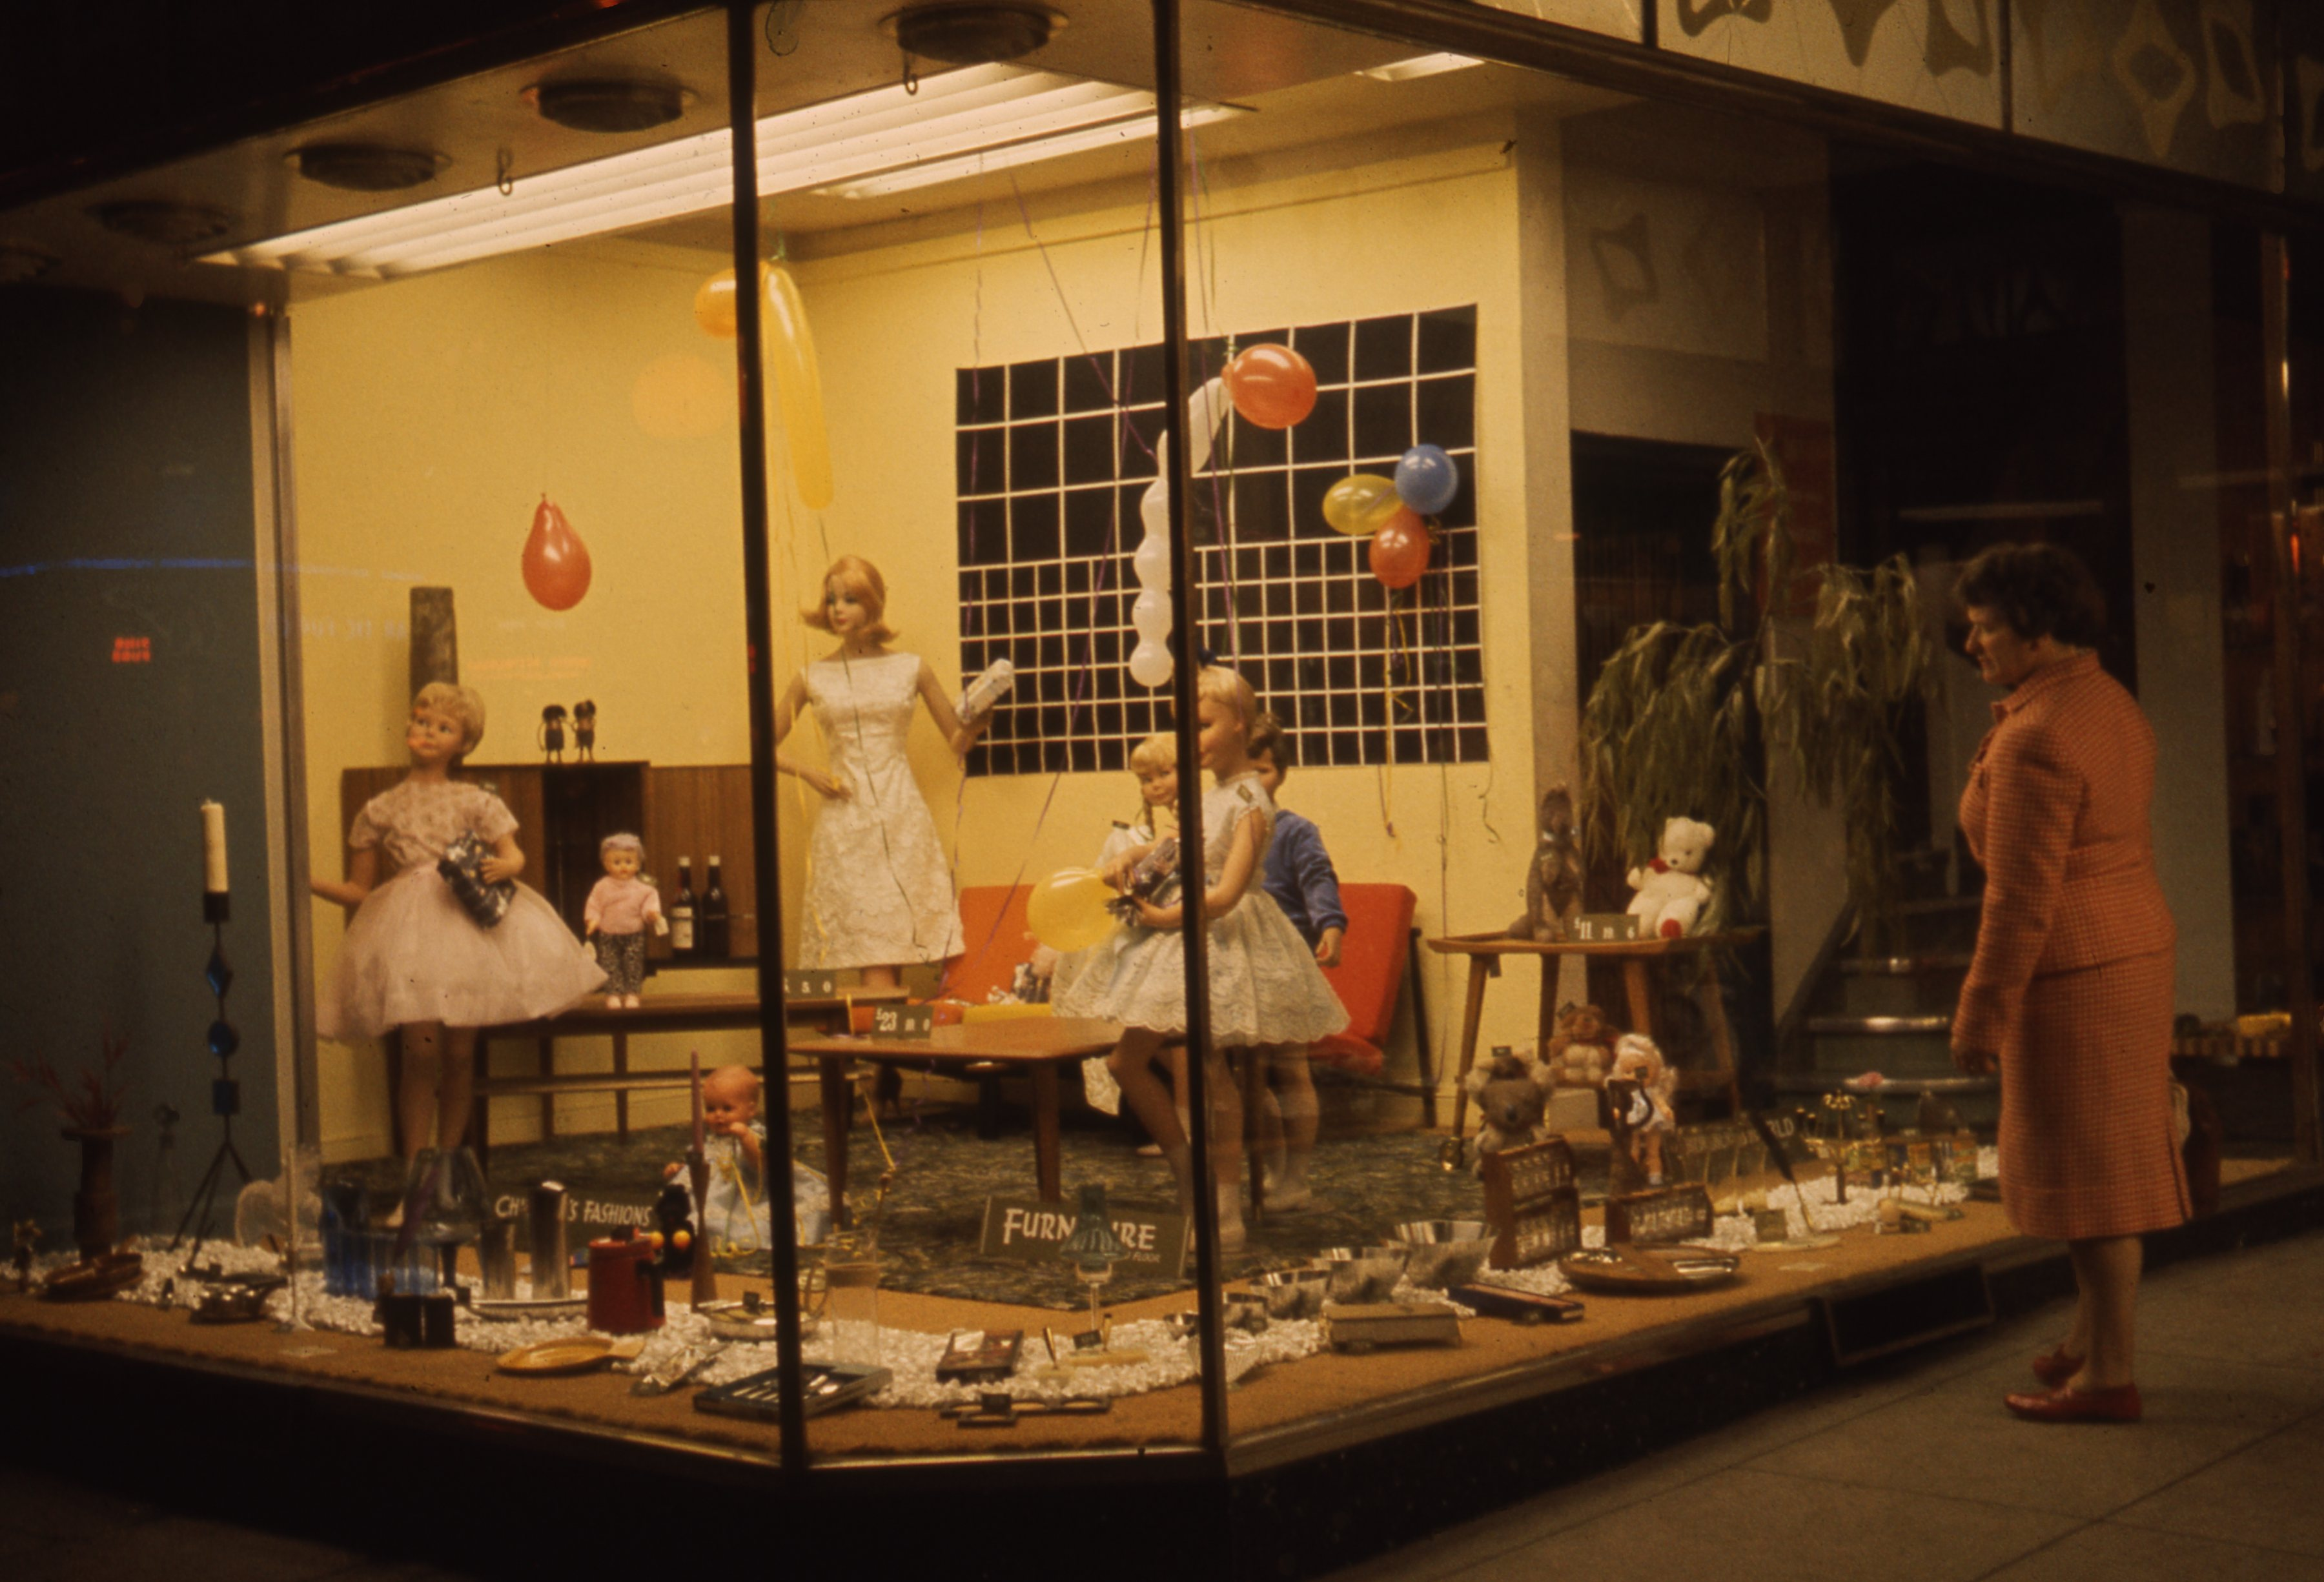 This is a festive window of the Broadloom Mill shop in Grey Street, Newcastle upon Tyne. This is a 35mm slide. It was taken in 1962.